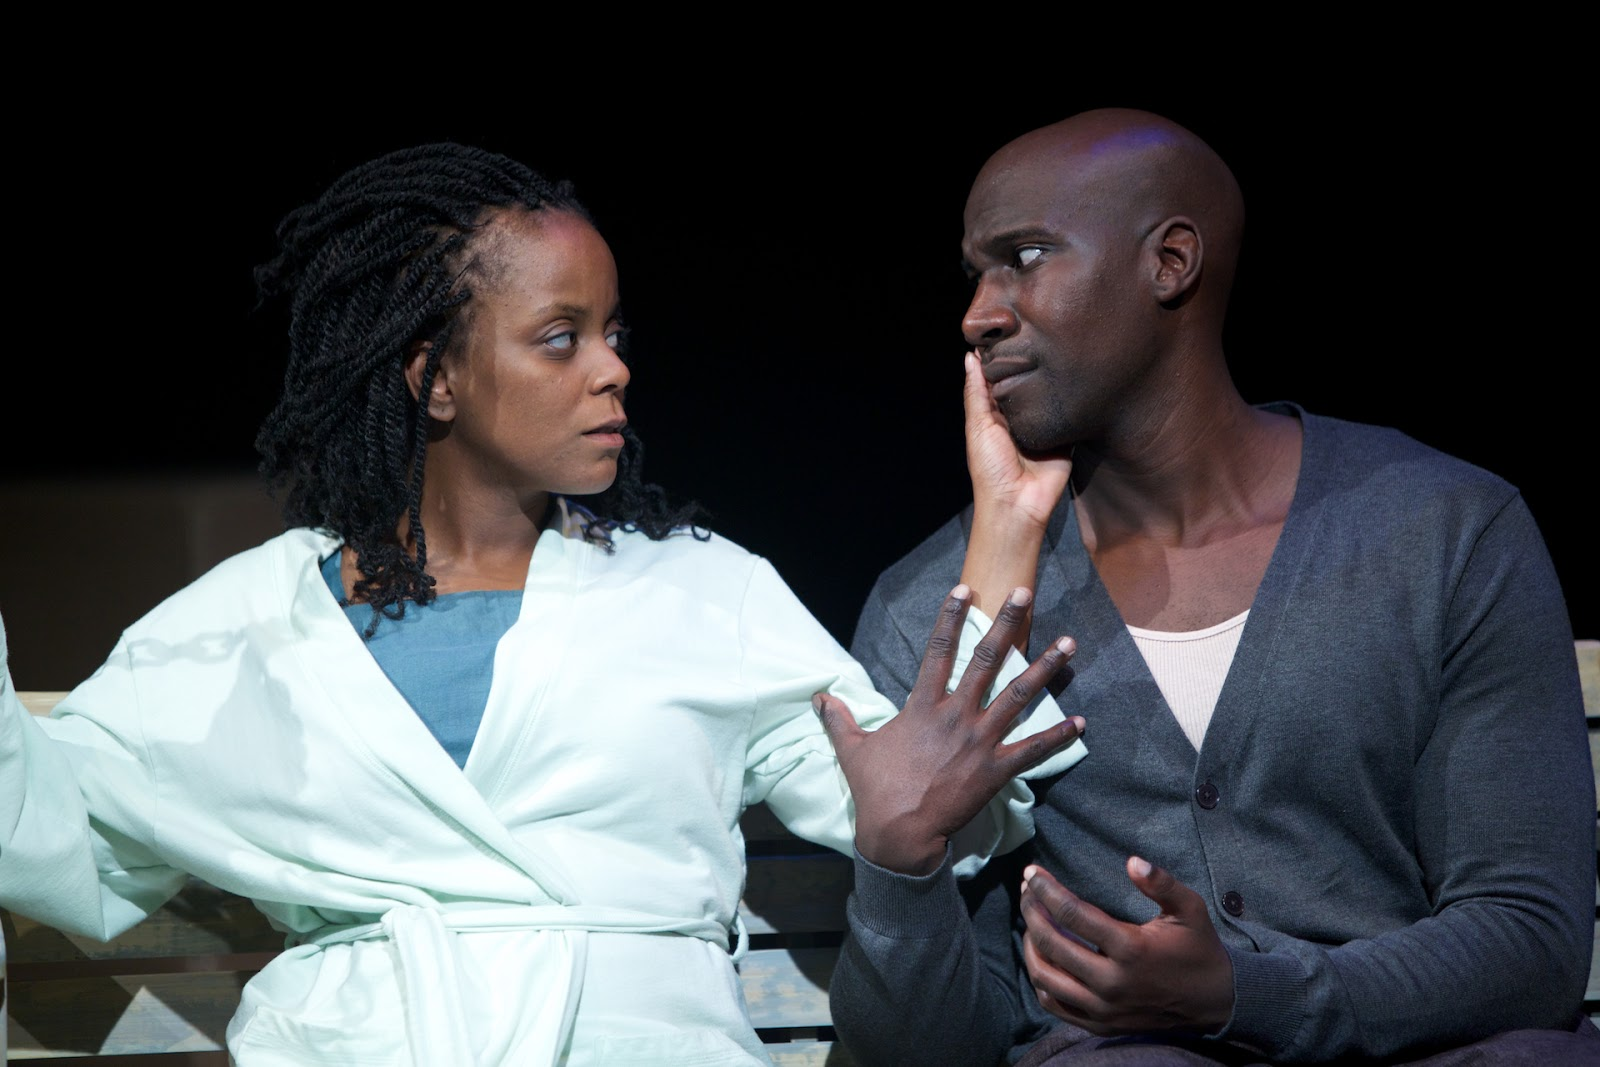 race identities in shakespeare s othello How is identity linked or sutured with signifiers of race othello, the character, is referred to throughout william shakespeare's play of the same name.